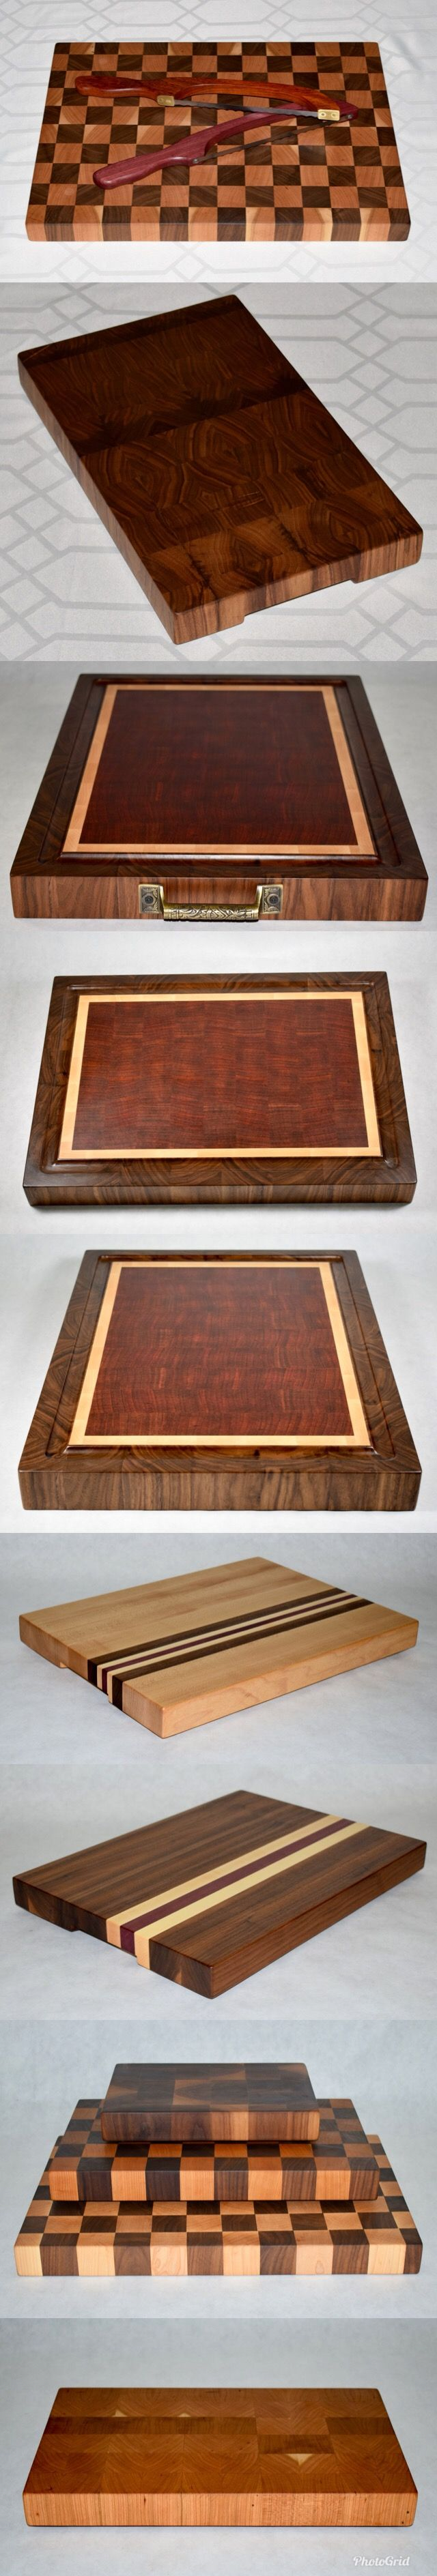 One simple and practical way to liven up a space is to add wooden counter tops, butcher-blocks or cutting boards. These items not only serve a purpose, but also provide a animated eye-catching piece of décor. #homedecor #wood #woodworking #handcrafted #foodie #partydecor #gifts #giftguide #giftsforher #amazing #giftideas #cook #chef #house #kitchendesign #wedding #weddinggift #dinnerparty #partytime #kitchenideas #weddinginspiration #homedecor #kitchens #weddingplanner #houseideas #wood